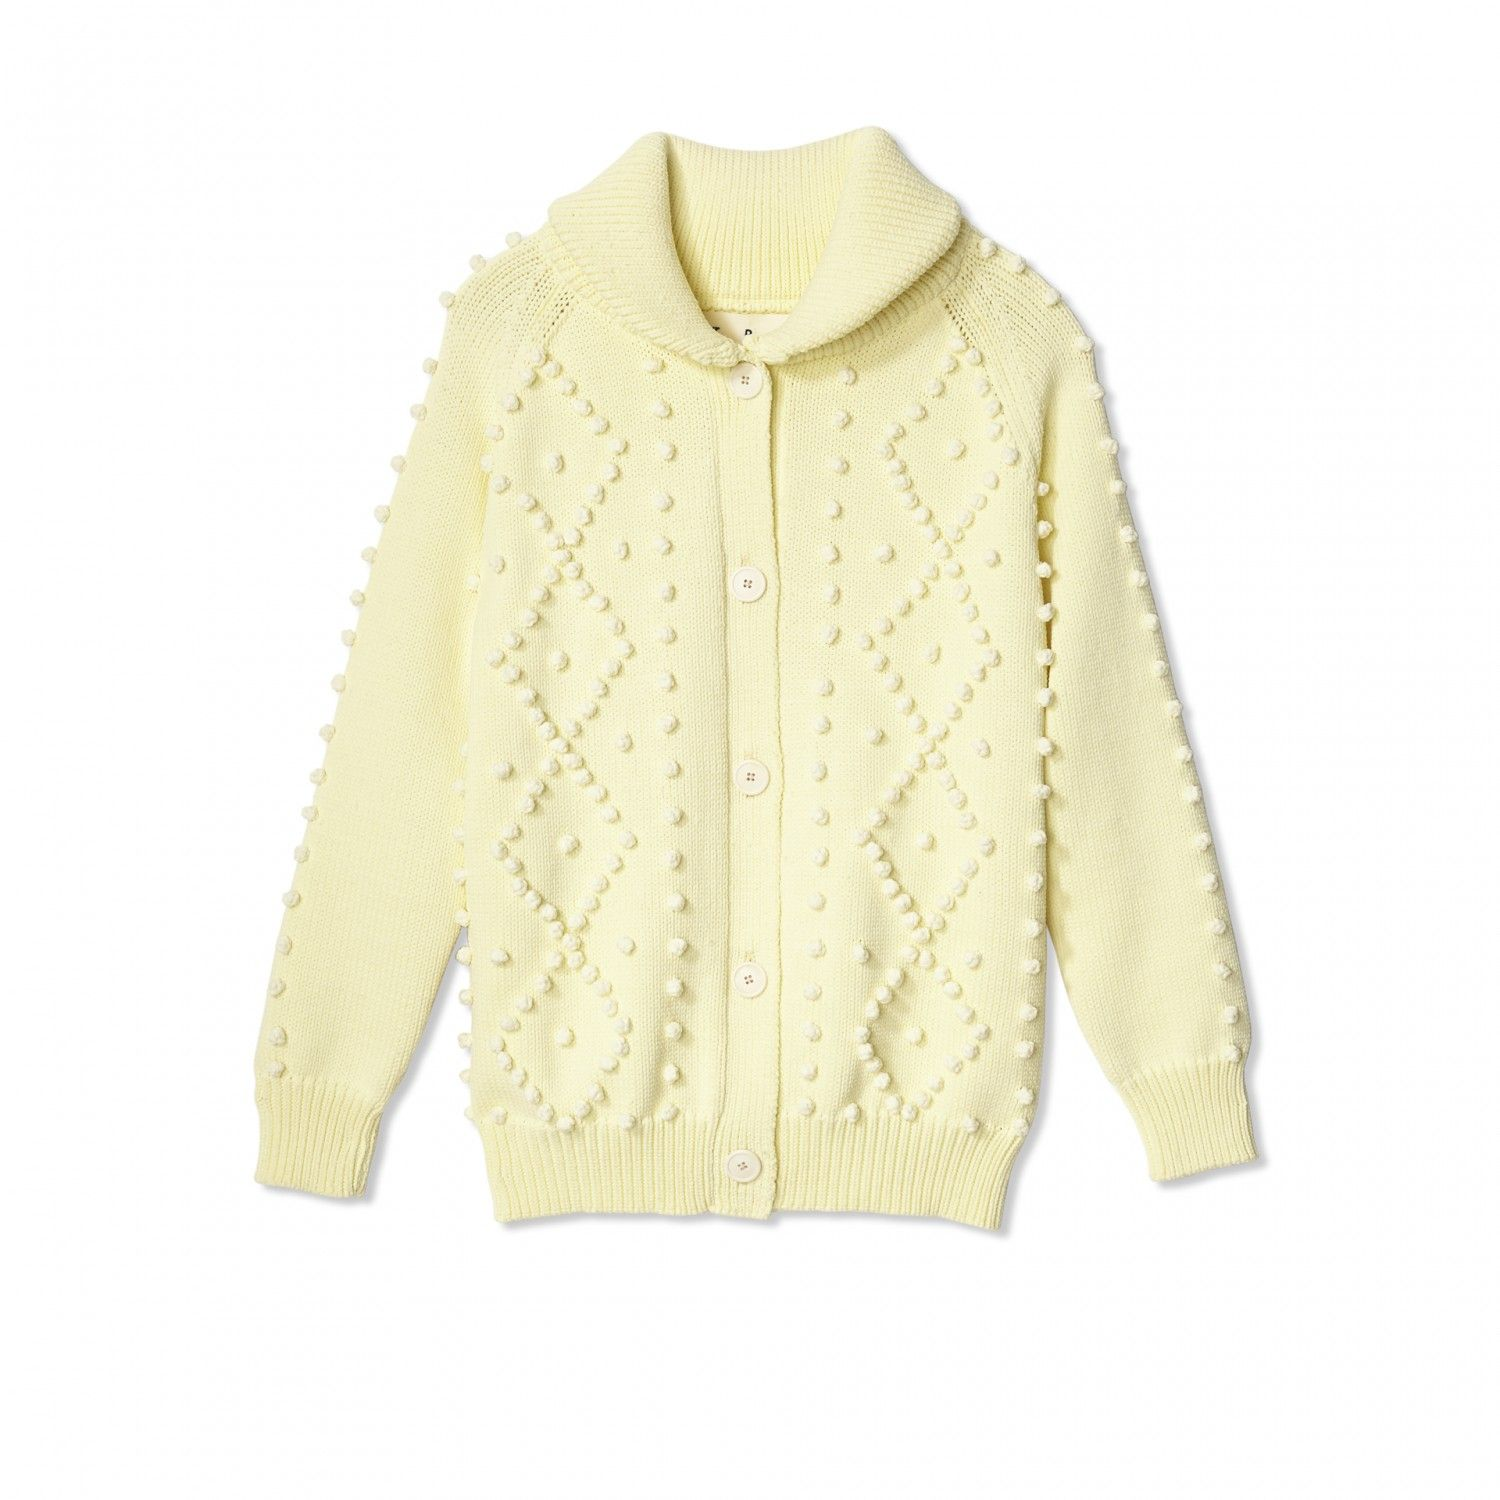 Bobble Cardigan in Pale Yellow by Trademark | A Few Things I'd ...